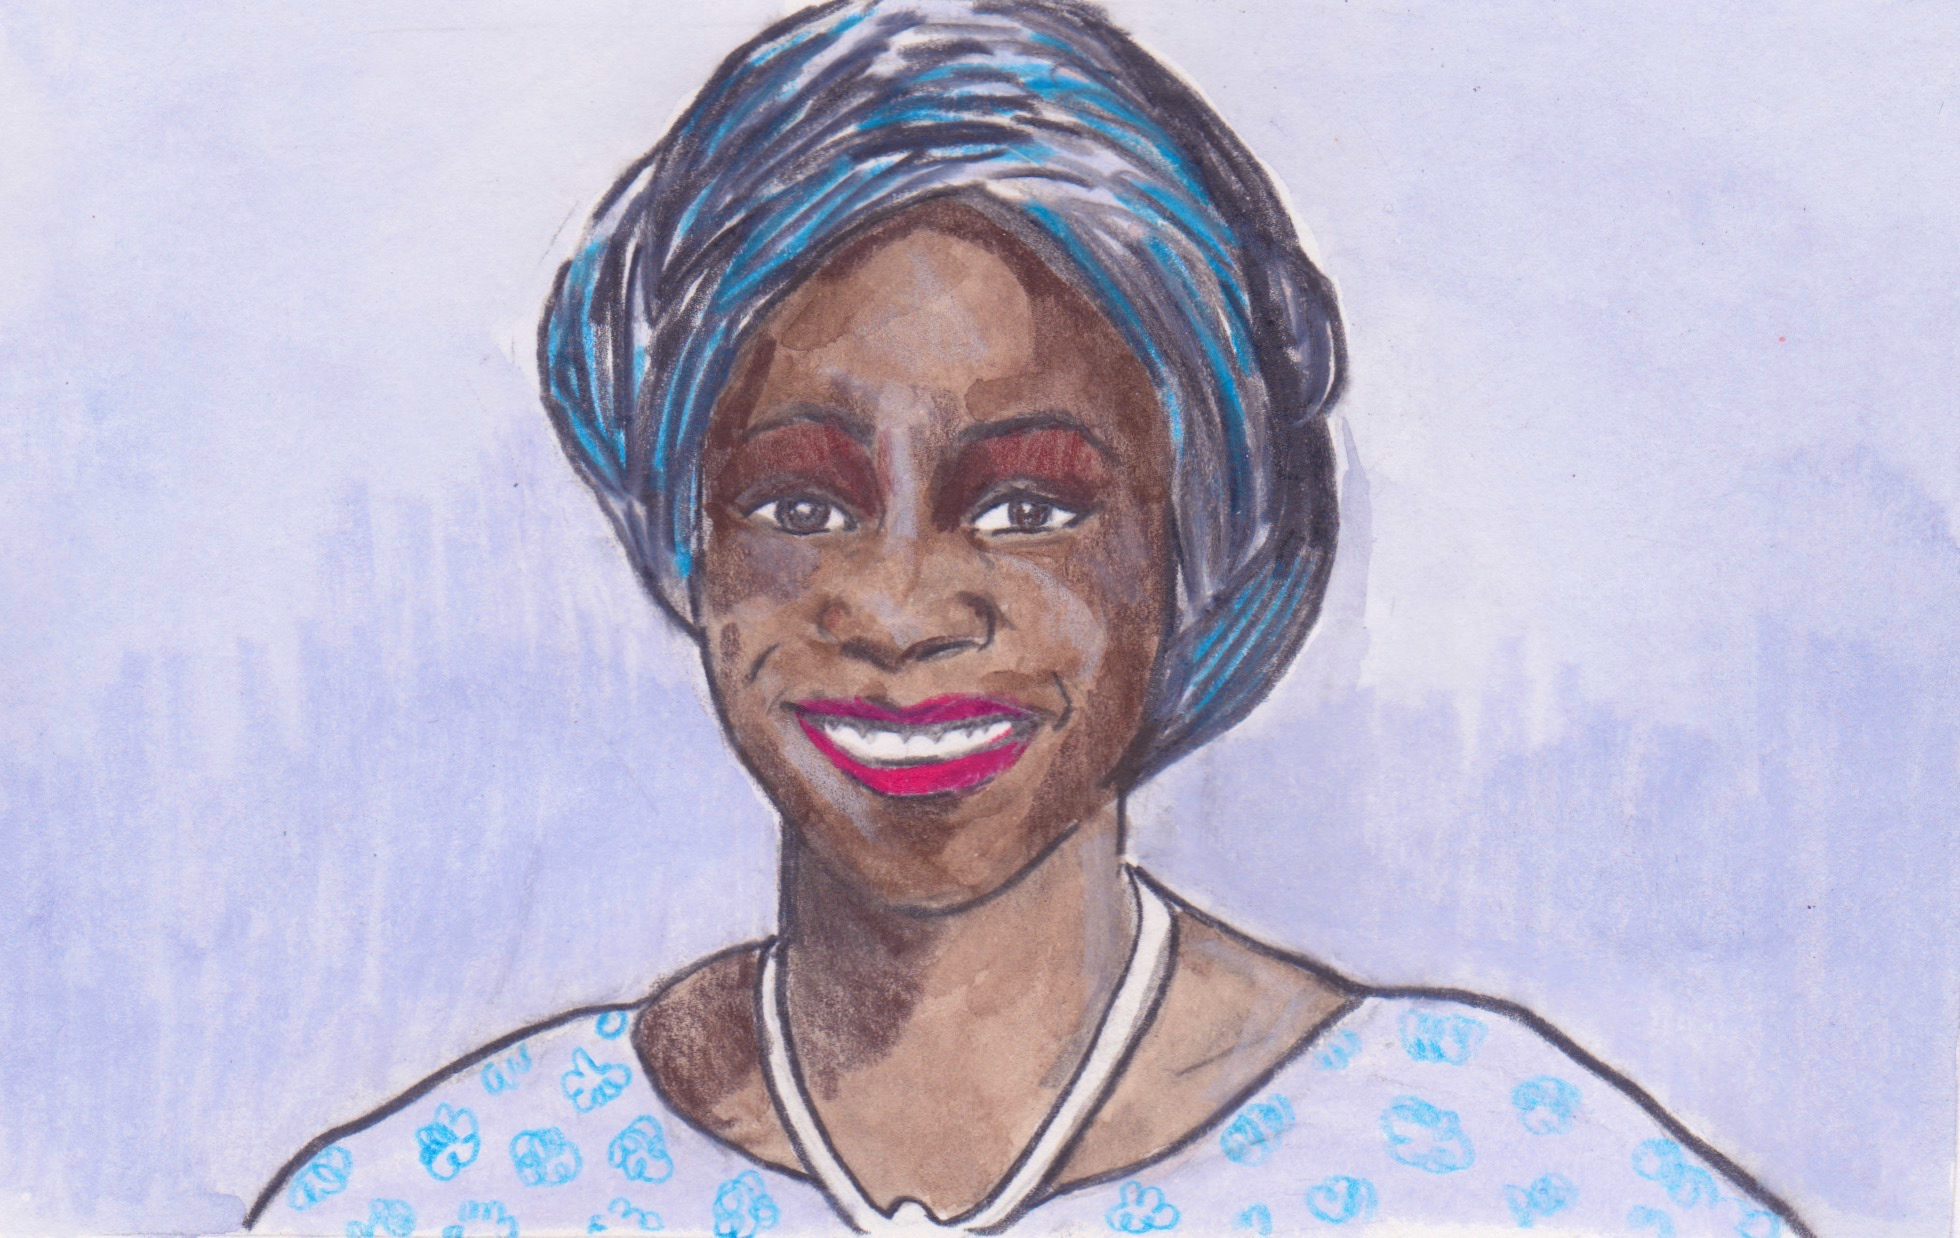 """19/05/15Hafsat Abiola-Costello's mother was shot in 1996 and her father died in prison in 1998. YA film which chronicles her dramatic family history and the story of Nigeria's fragile pro-democracy movement opens today in the UK. """"The Supreme Price' won the prize for best documentary at the Africa International Film Festival."""